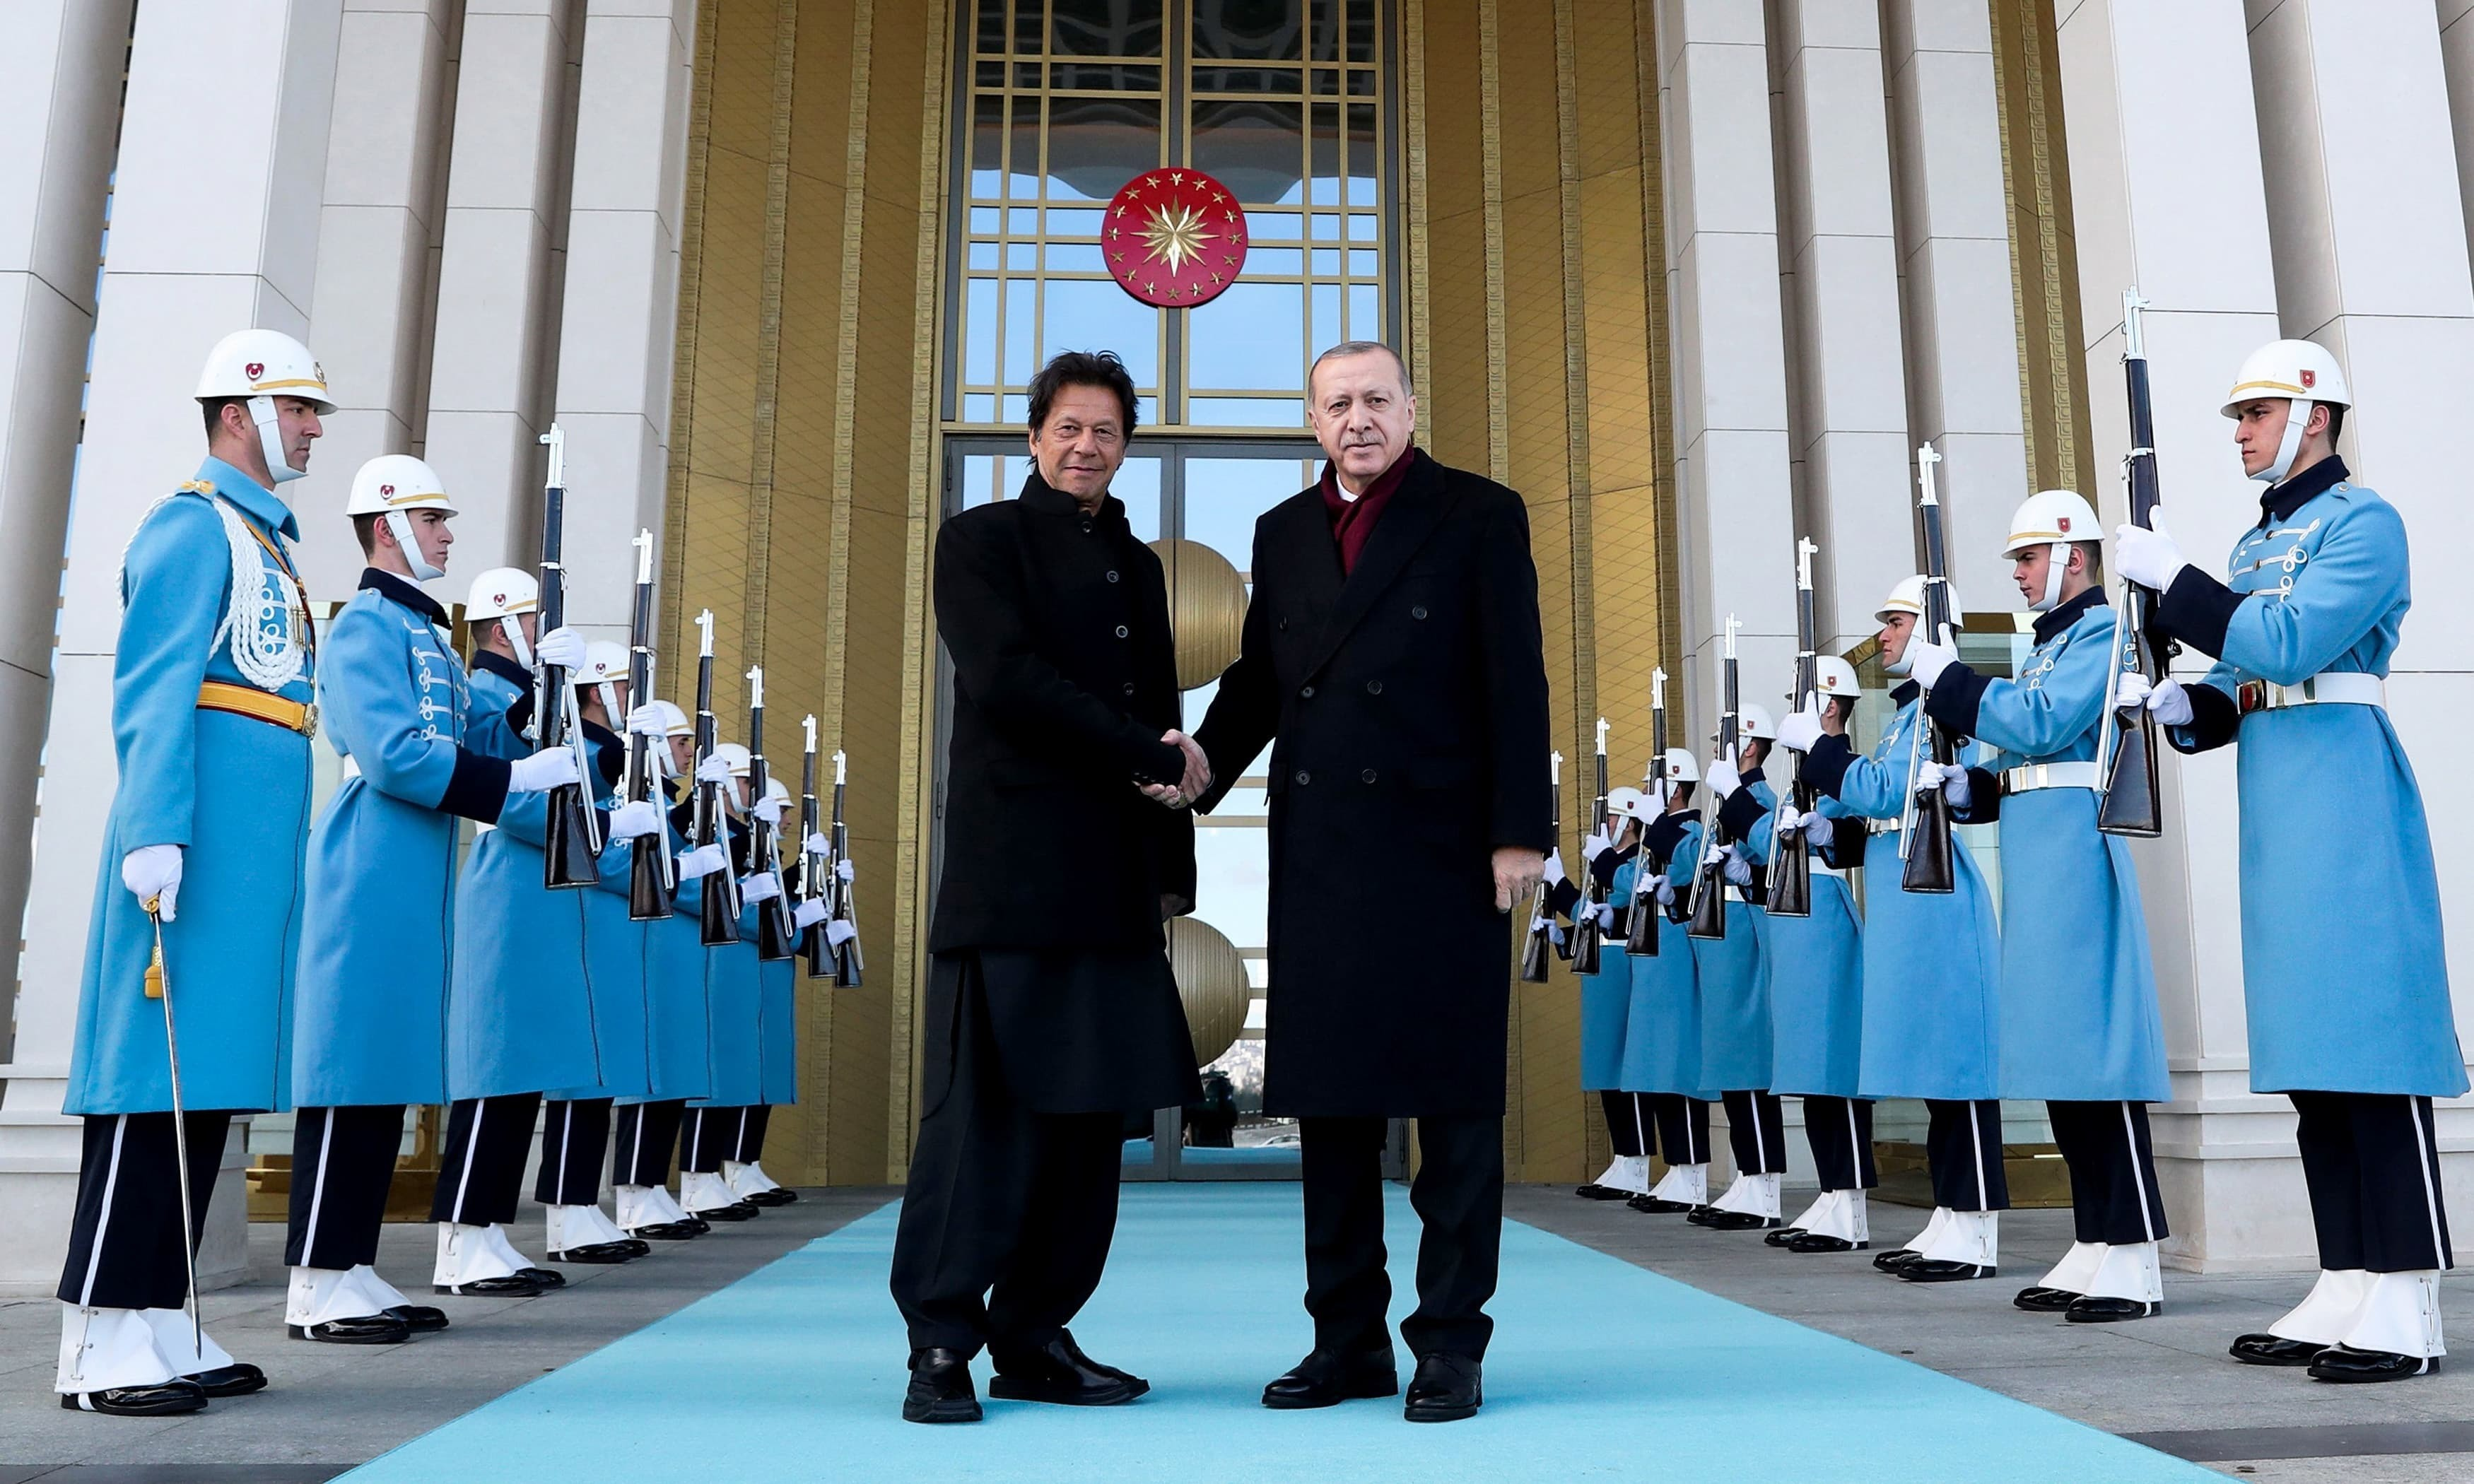 Prime Minister Imran Khan has thanked Turkish President Recep Tayyip Erdogan and Iranian Supreme Leader Ayatollah Ali Khamenei for speaking up against the oppression of Muslims in India. — AFP/File